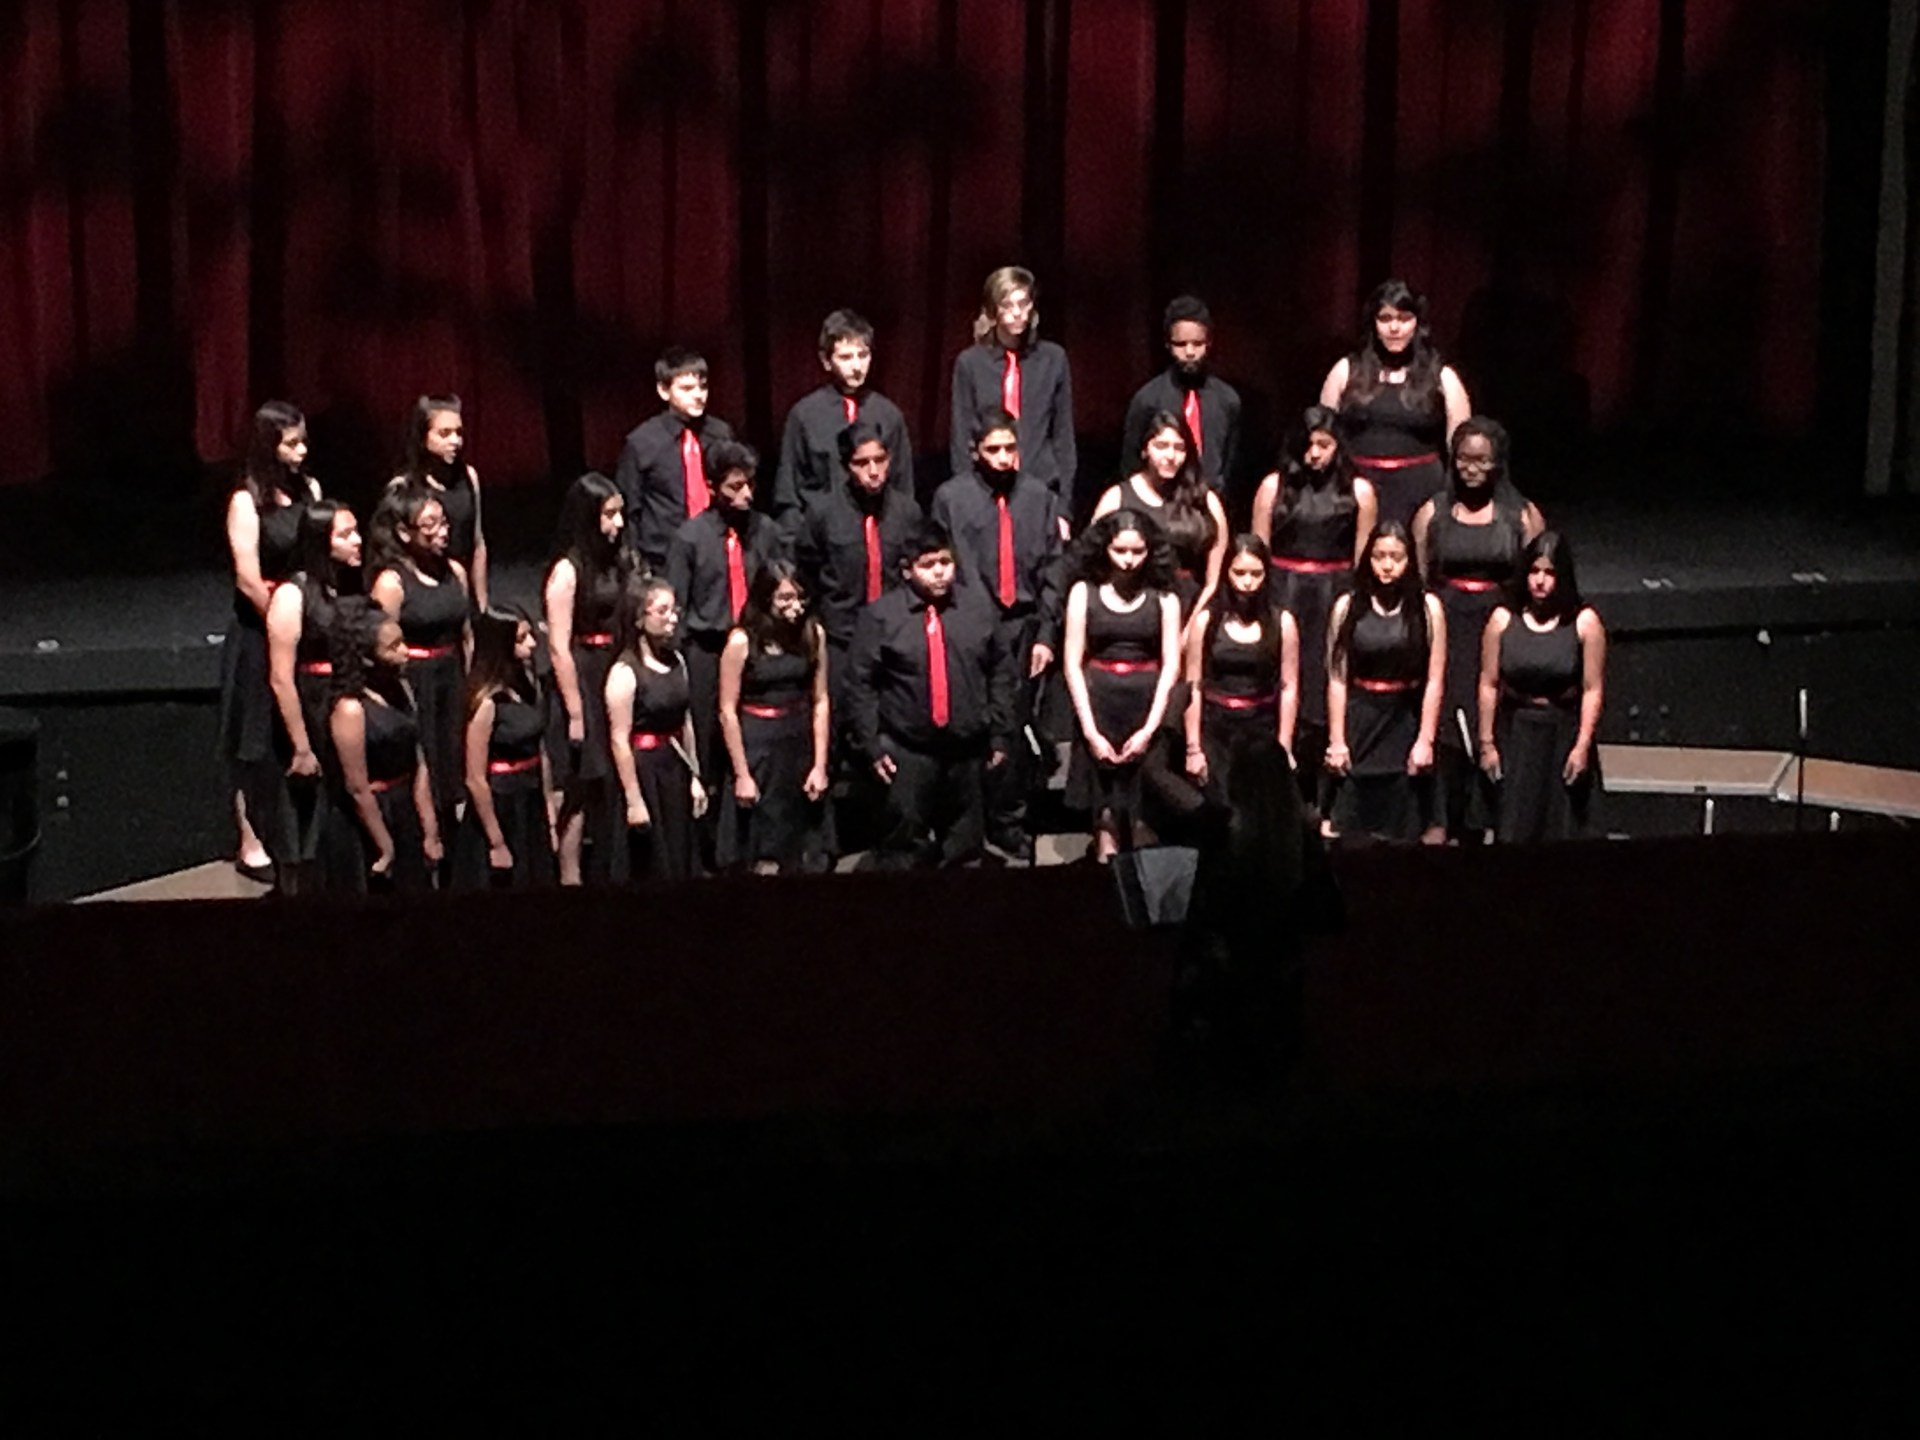 A Jr. High Choir singing.